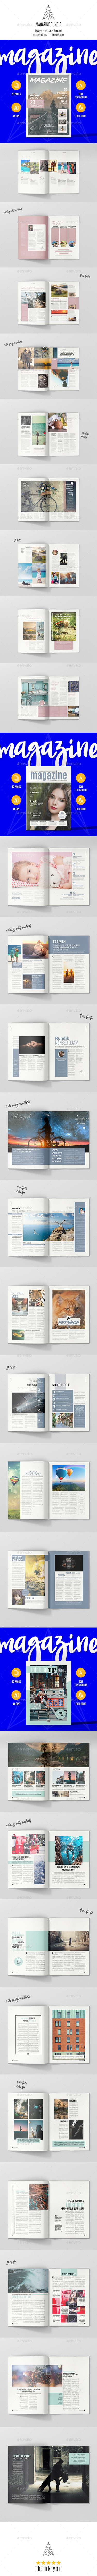 Magazine Bundle 60 Pages - Magazines Print Templates